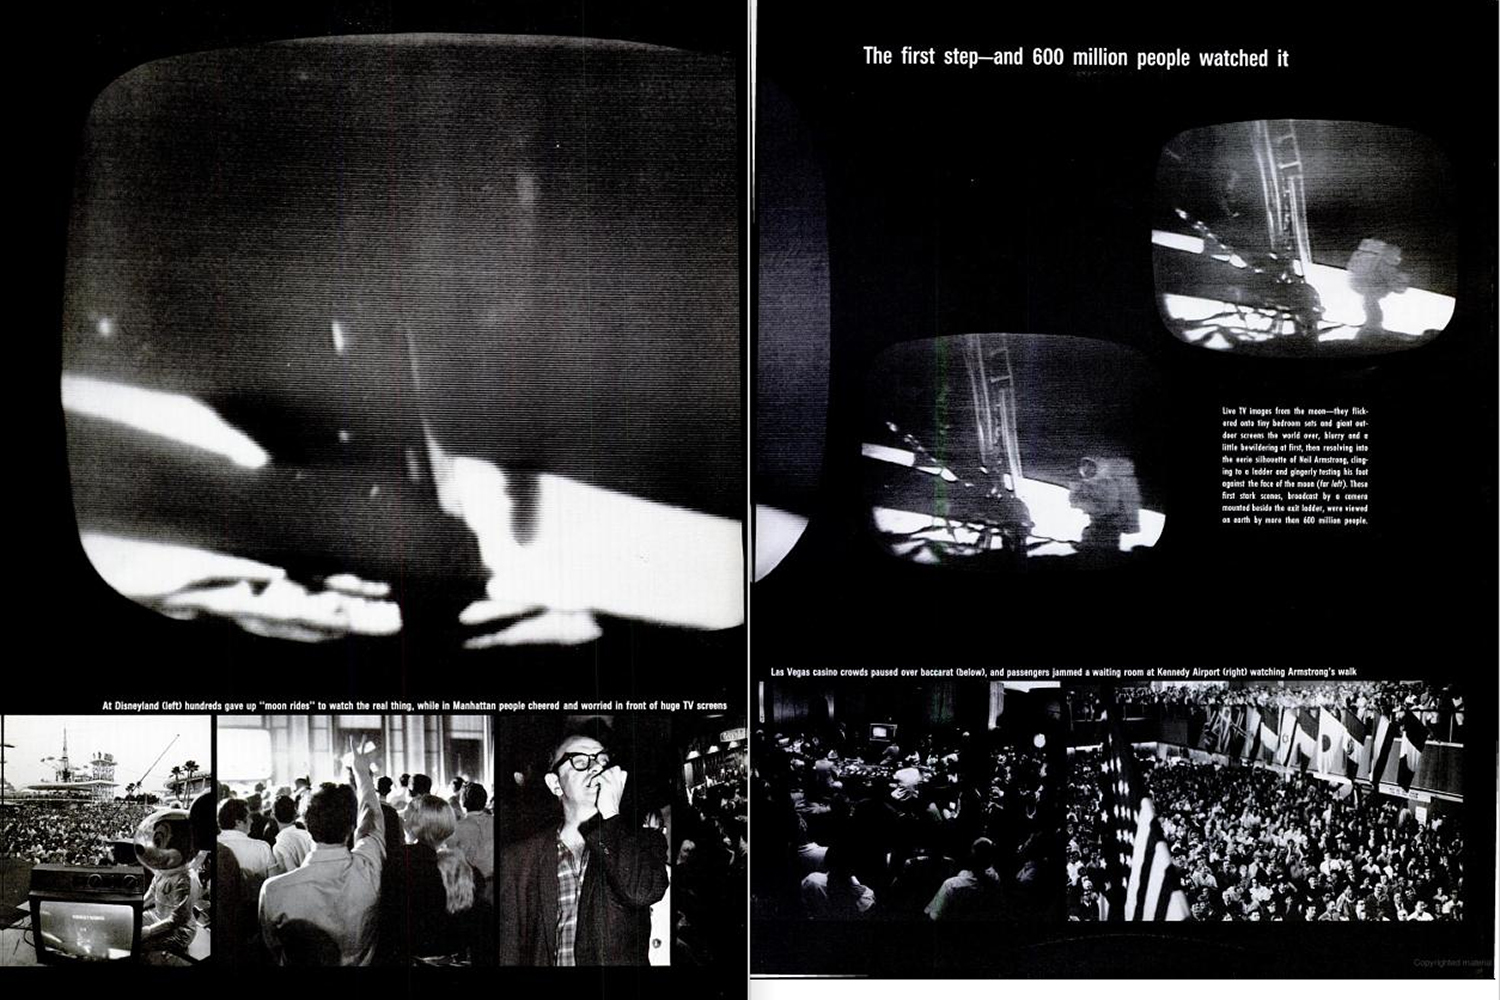 "<b>Life magazine Special Edition, August 11, 1969.</b> ""At Disneyland (left) hundreds gave up 'moon rides' to watch the real thing. While in Manhattan people cheered and worried in front of huge TV screens. Las Vegas casino crowds paused over Baccarat (below) and passengers jammed a waiting room at JFK airport (right) to watching Armstrong's walk ..."""